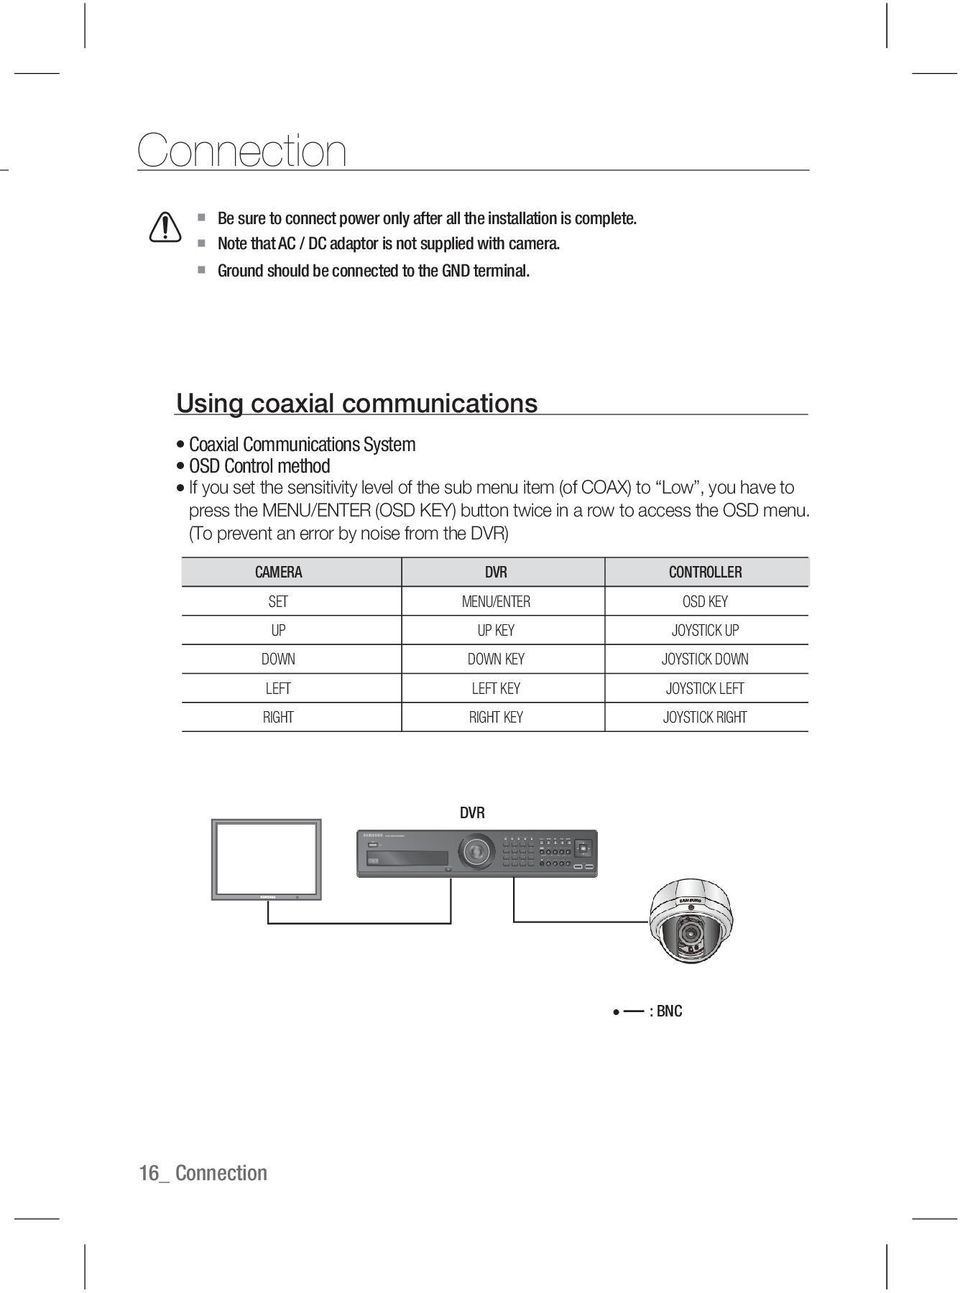 Using coaxial communications Coaxial Communications System OSD Control method If you set the sensitivity level of the sub menu item (of COAX) to Low, you have to press the MENU/ENTER (OSD KEY) button